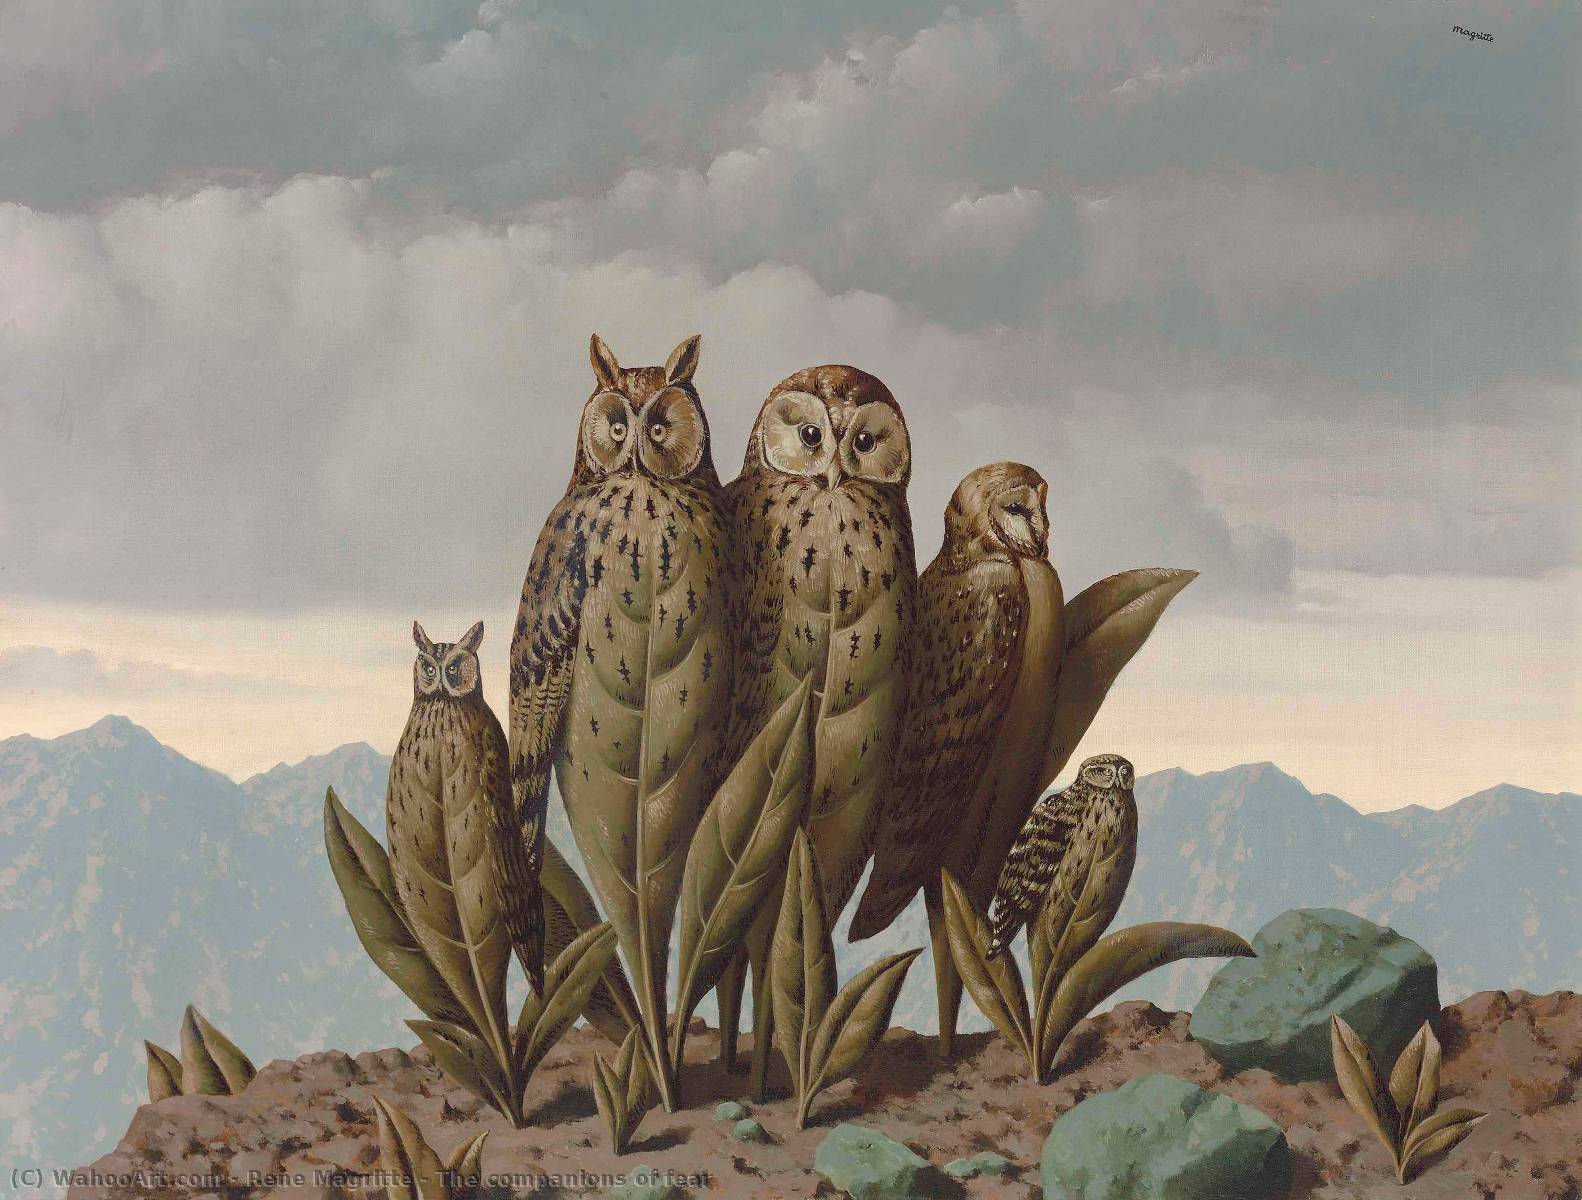 The companions of fear, Oil by Rene Magritte (1898-1967, Belgium)